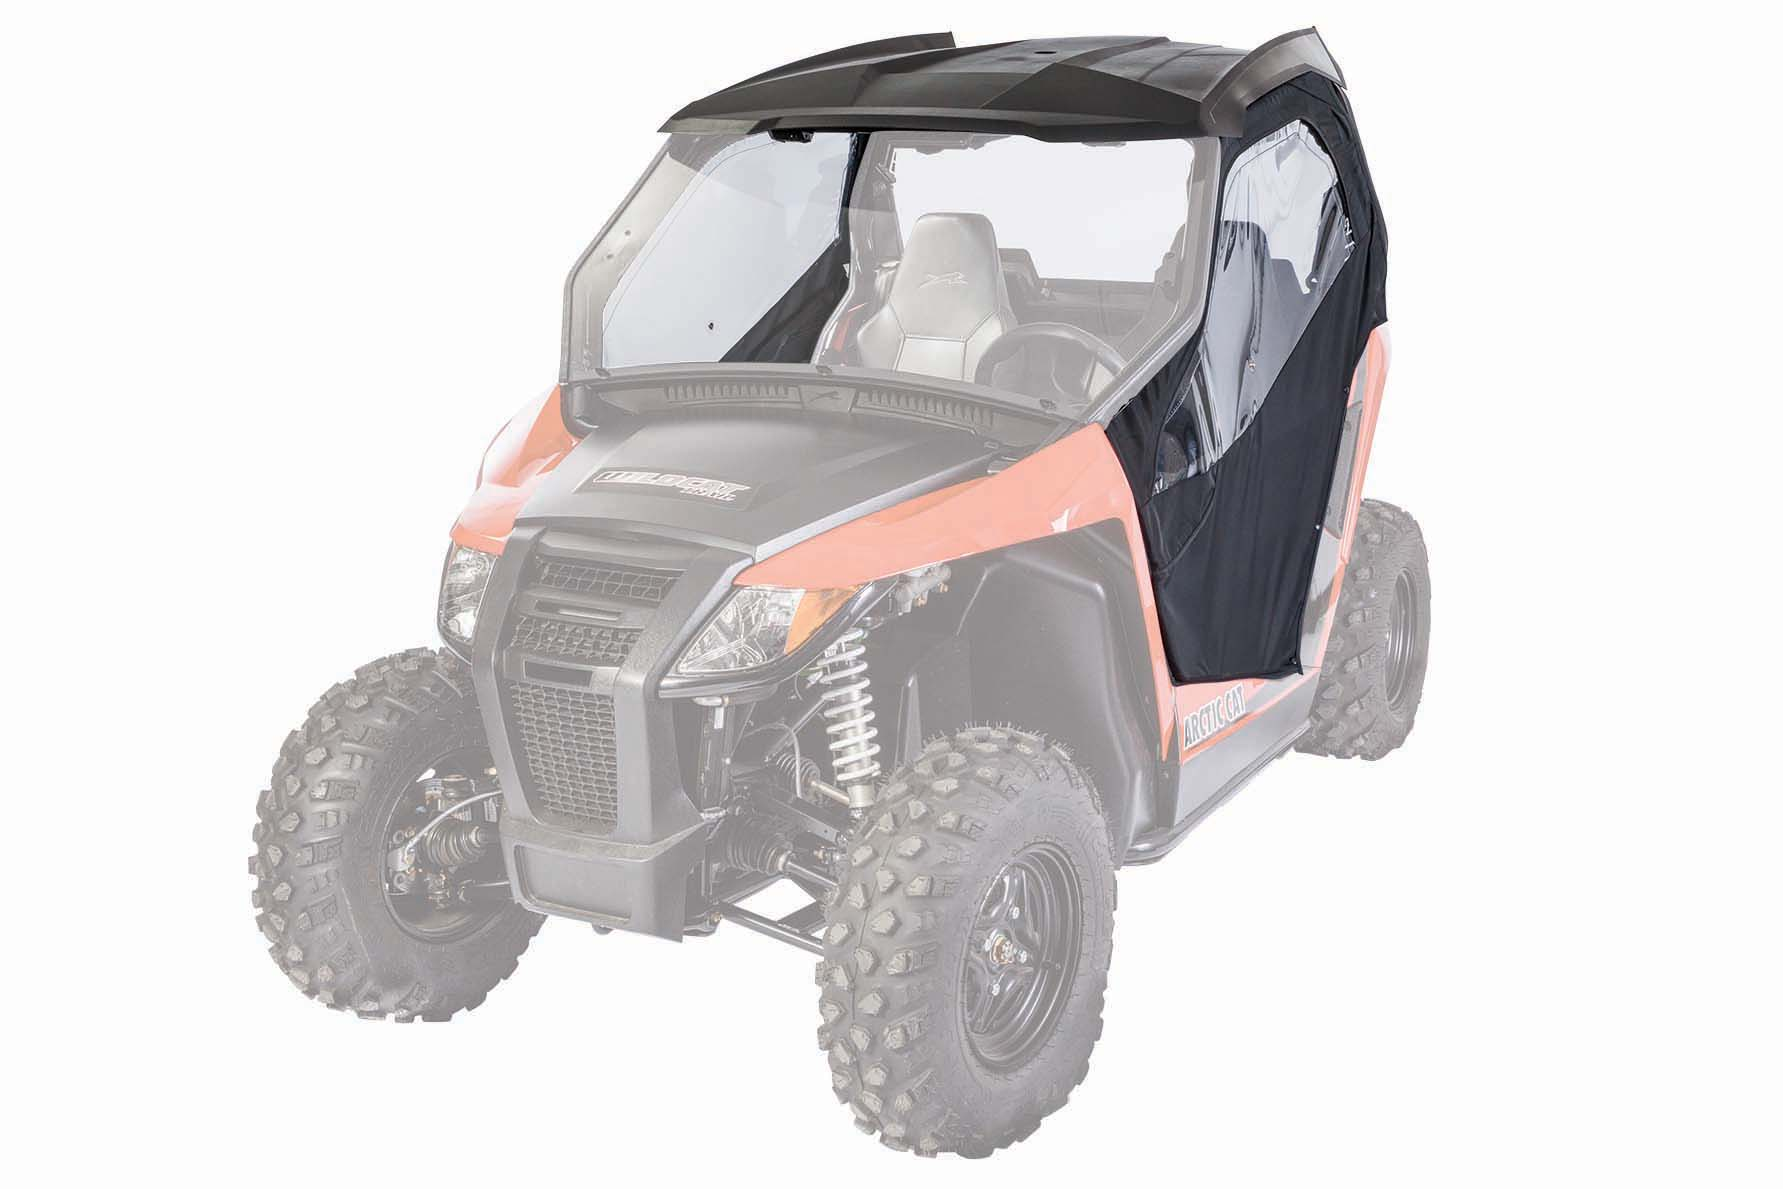 Enlarge  sc 1 st  Arctic Cat & Arctic Cat Inc. Soft Door Kit (Fits Soft or Hard Top) - Soft Cab Kits pezcame.com